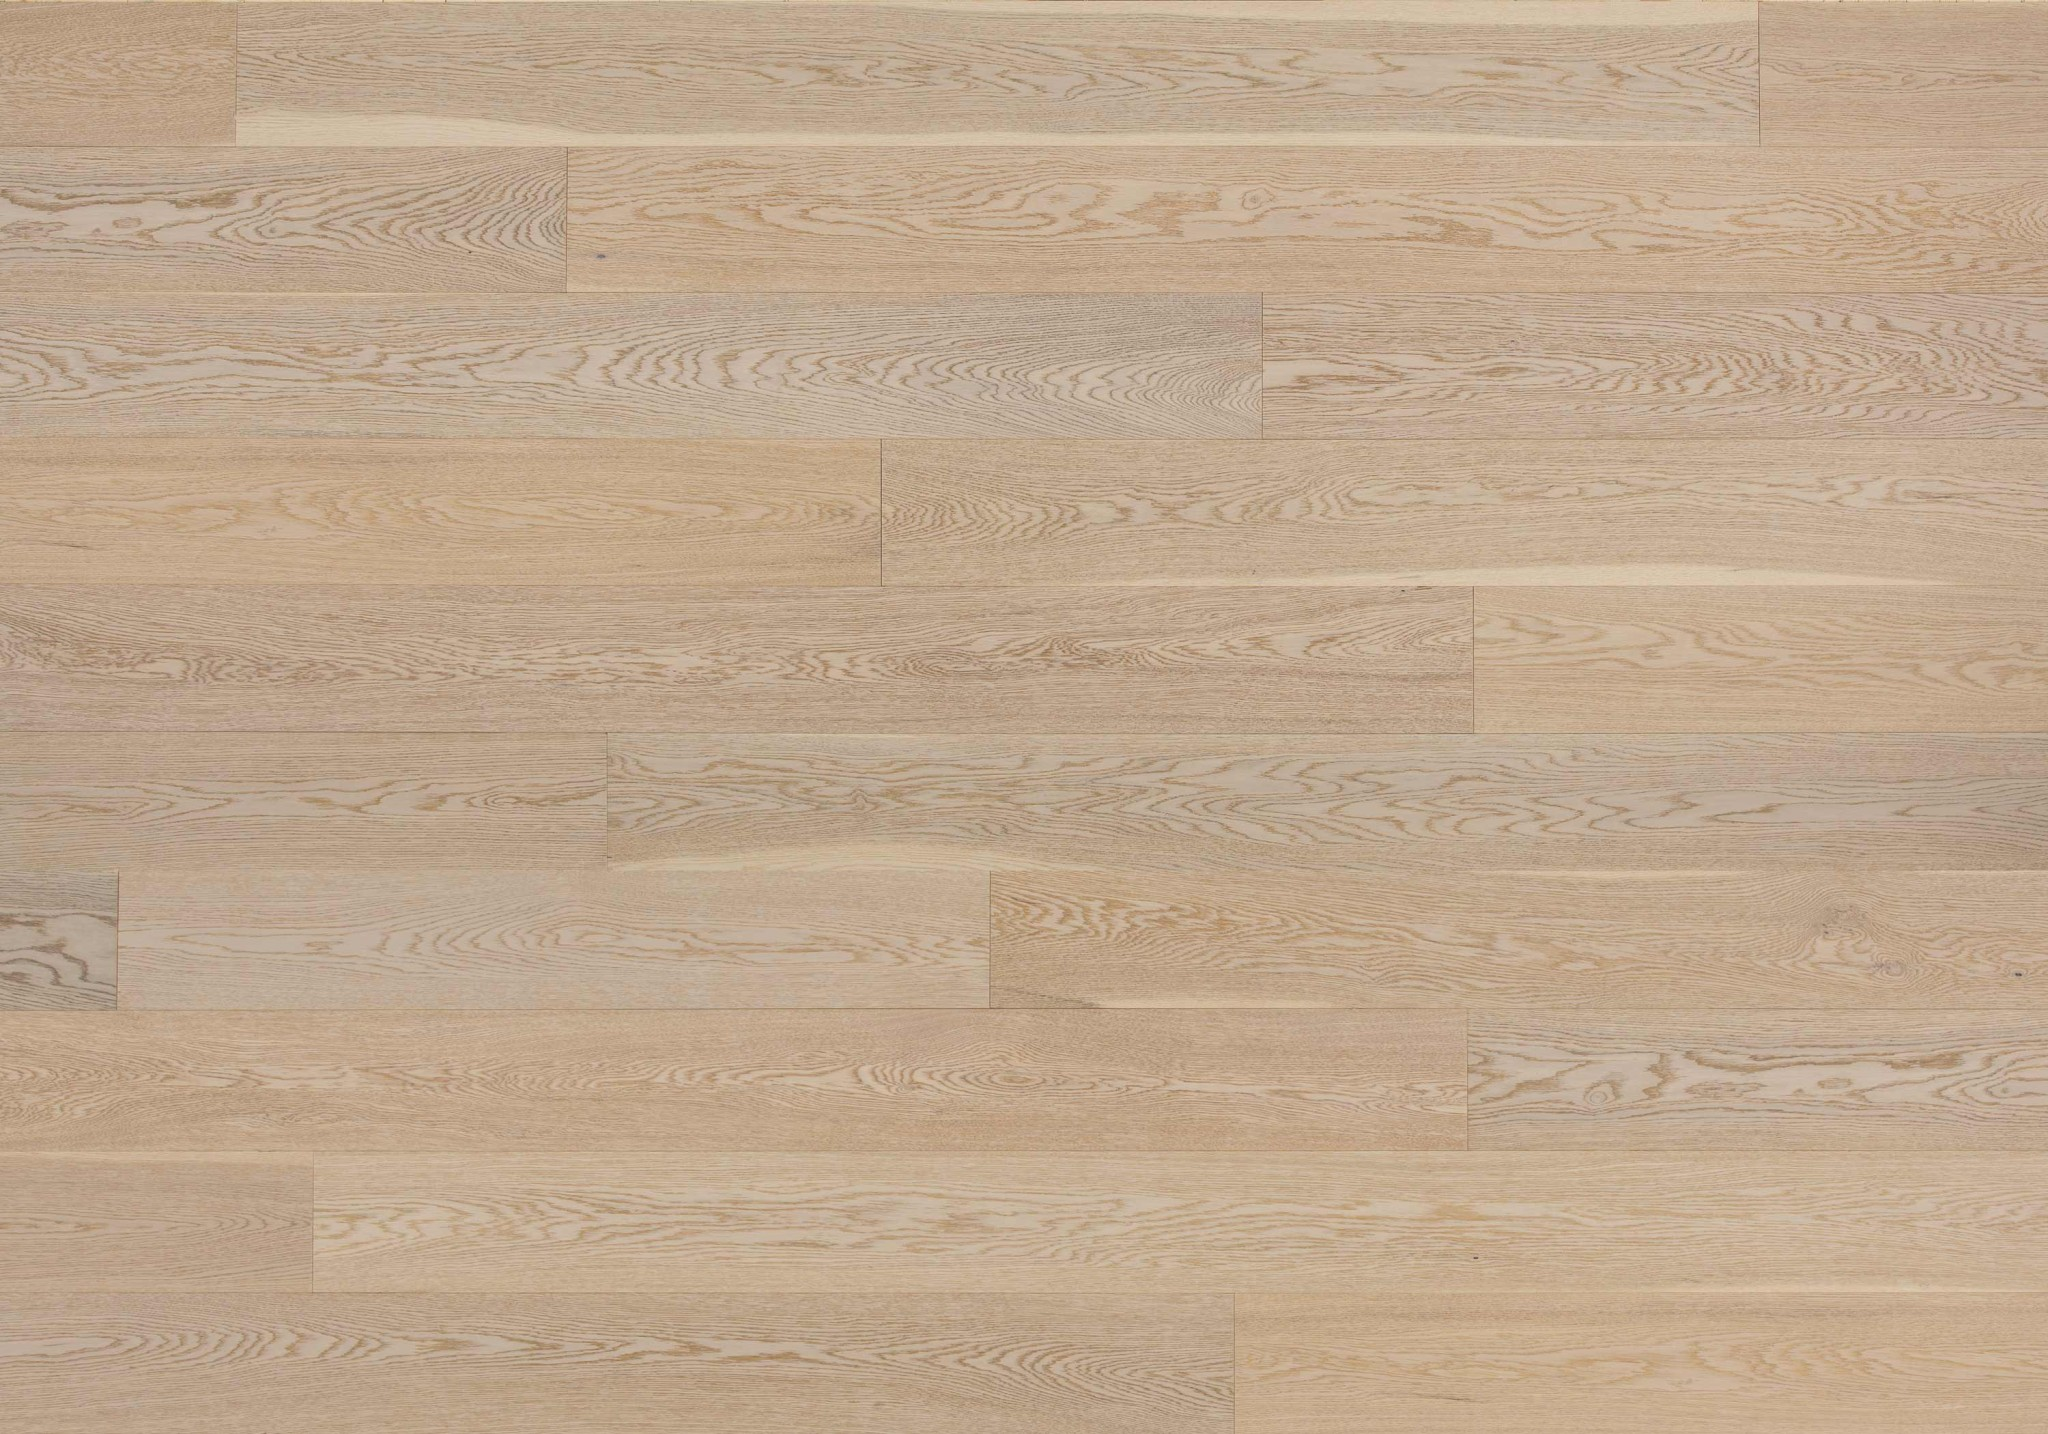 white-oak-hardwood-flooring-light-chelseacream-urbanloft-designer-lauzon